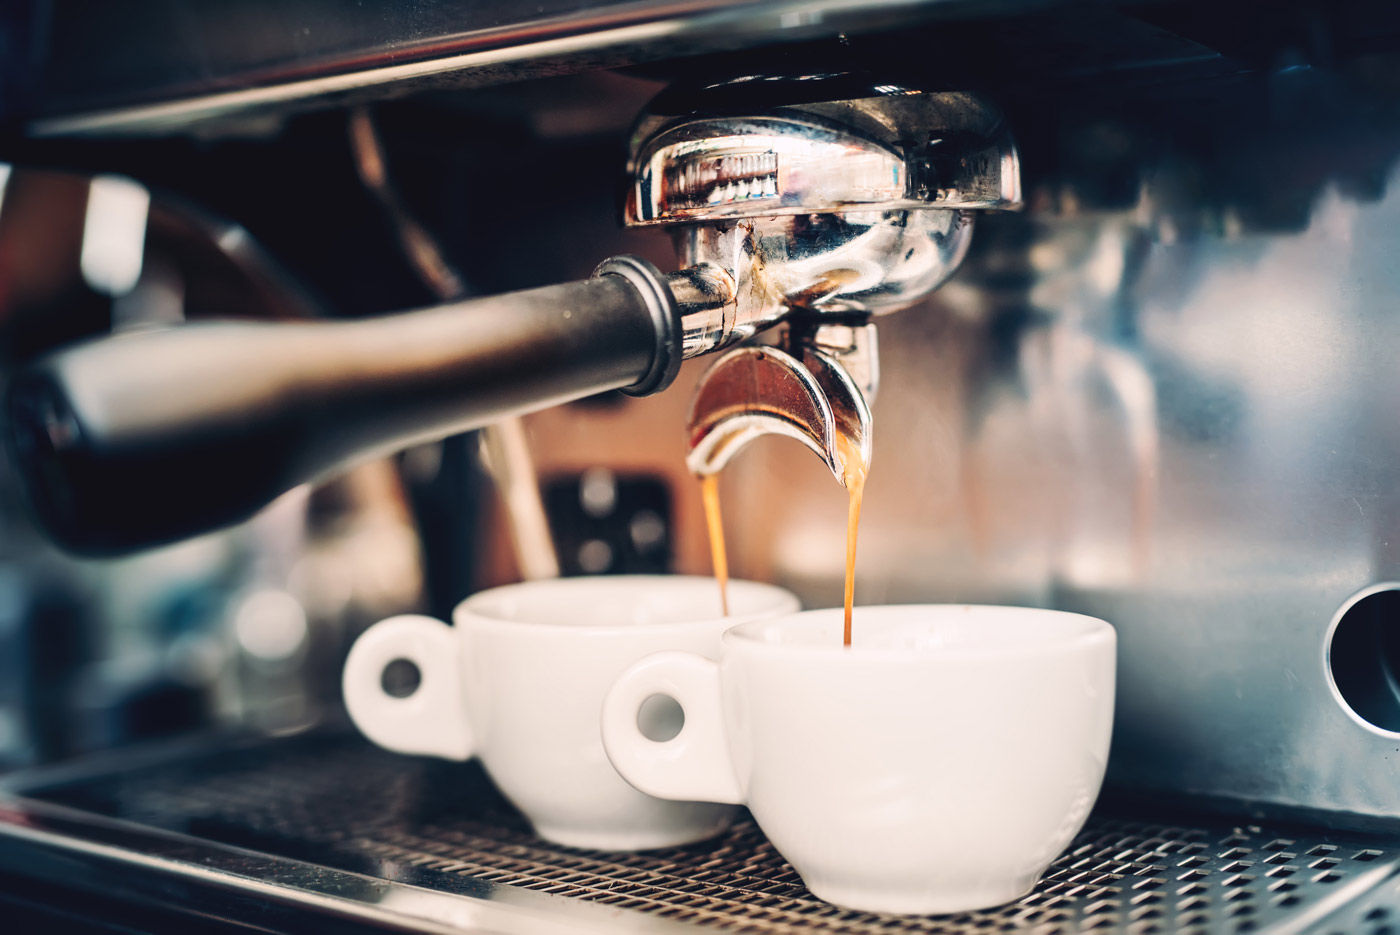 Enjoy an espresso or two at one of these excellent coffee shops near the Comfort Suites Kelowna hotel.